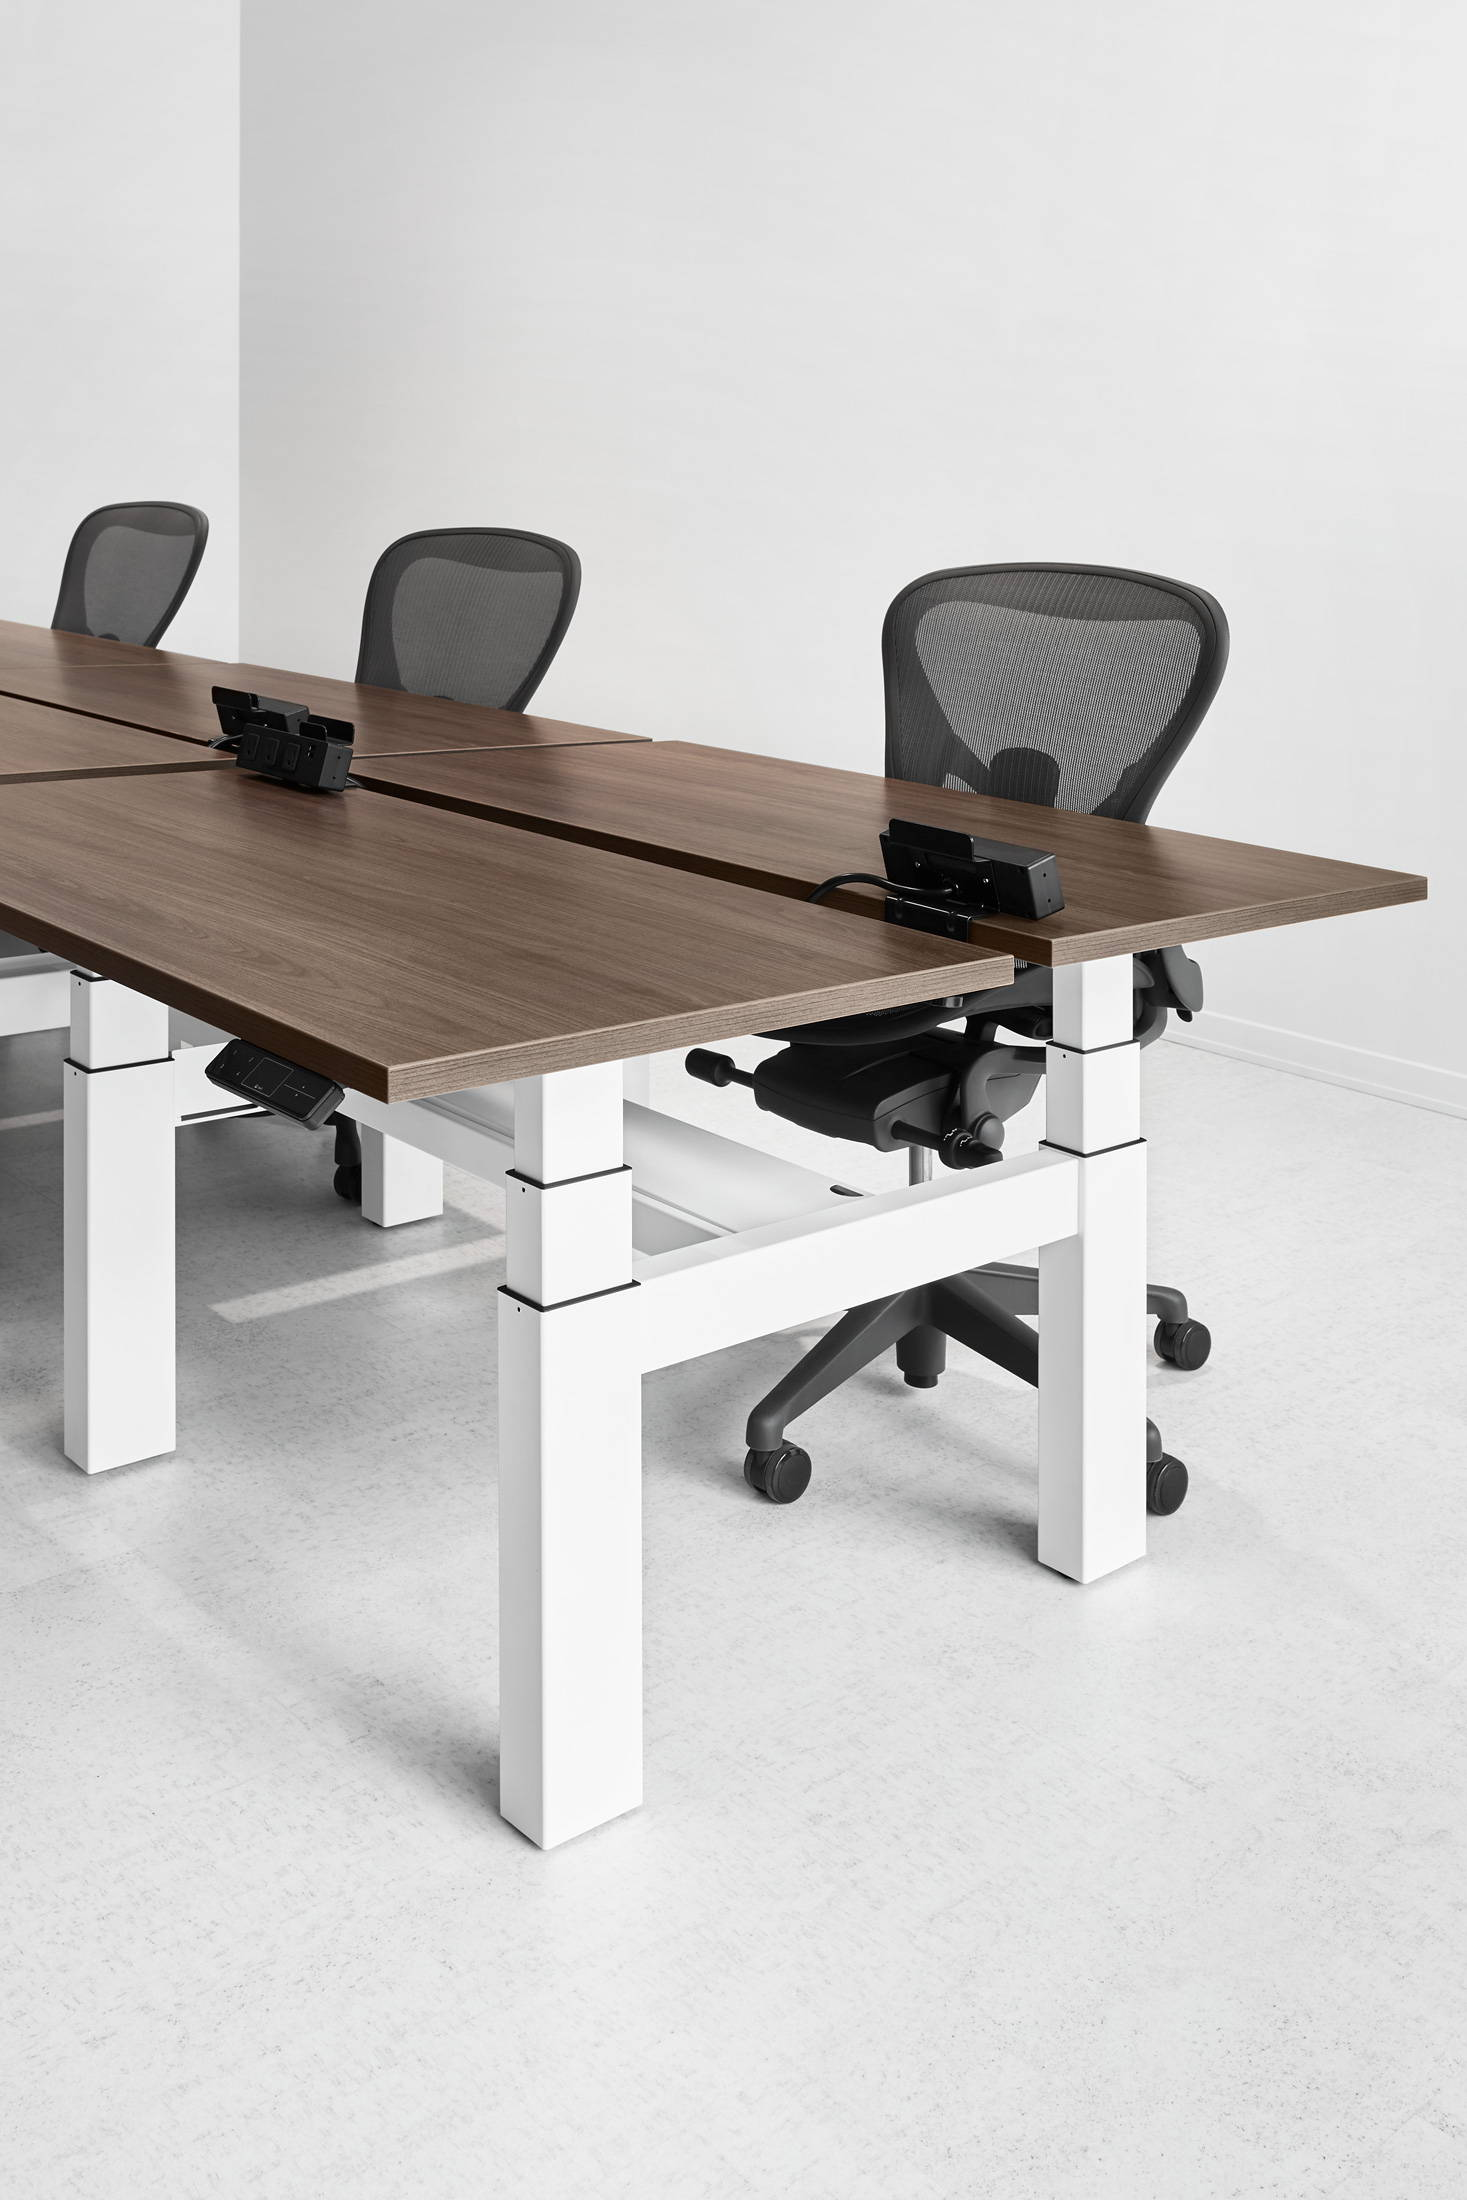 Shopify sit-stand desks - from ergonofis Montreal